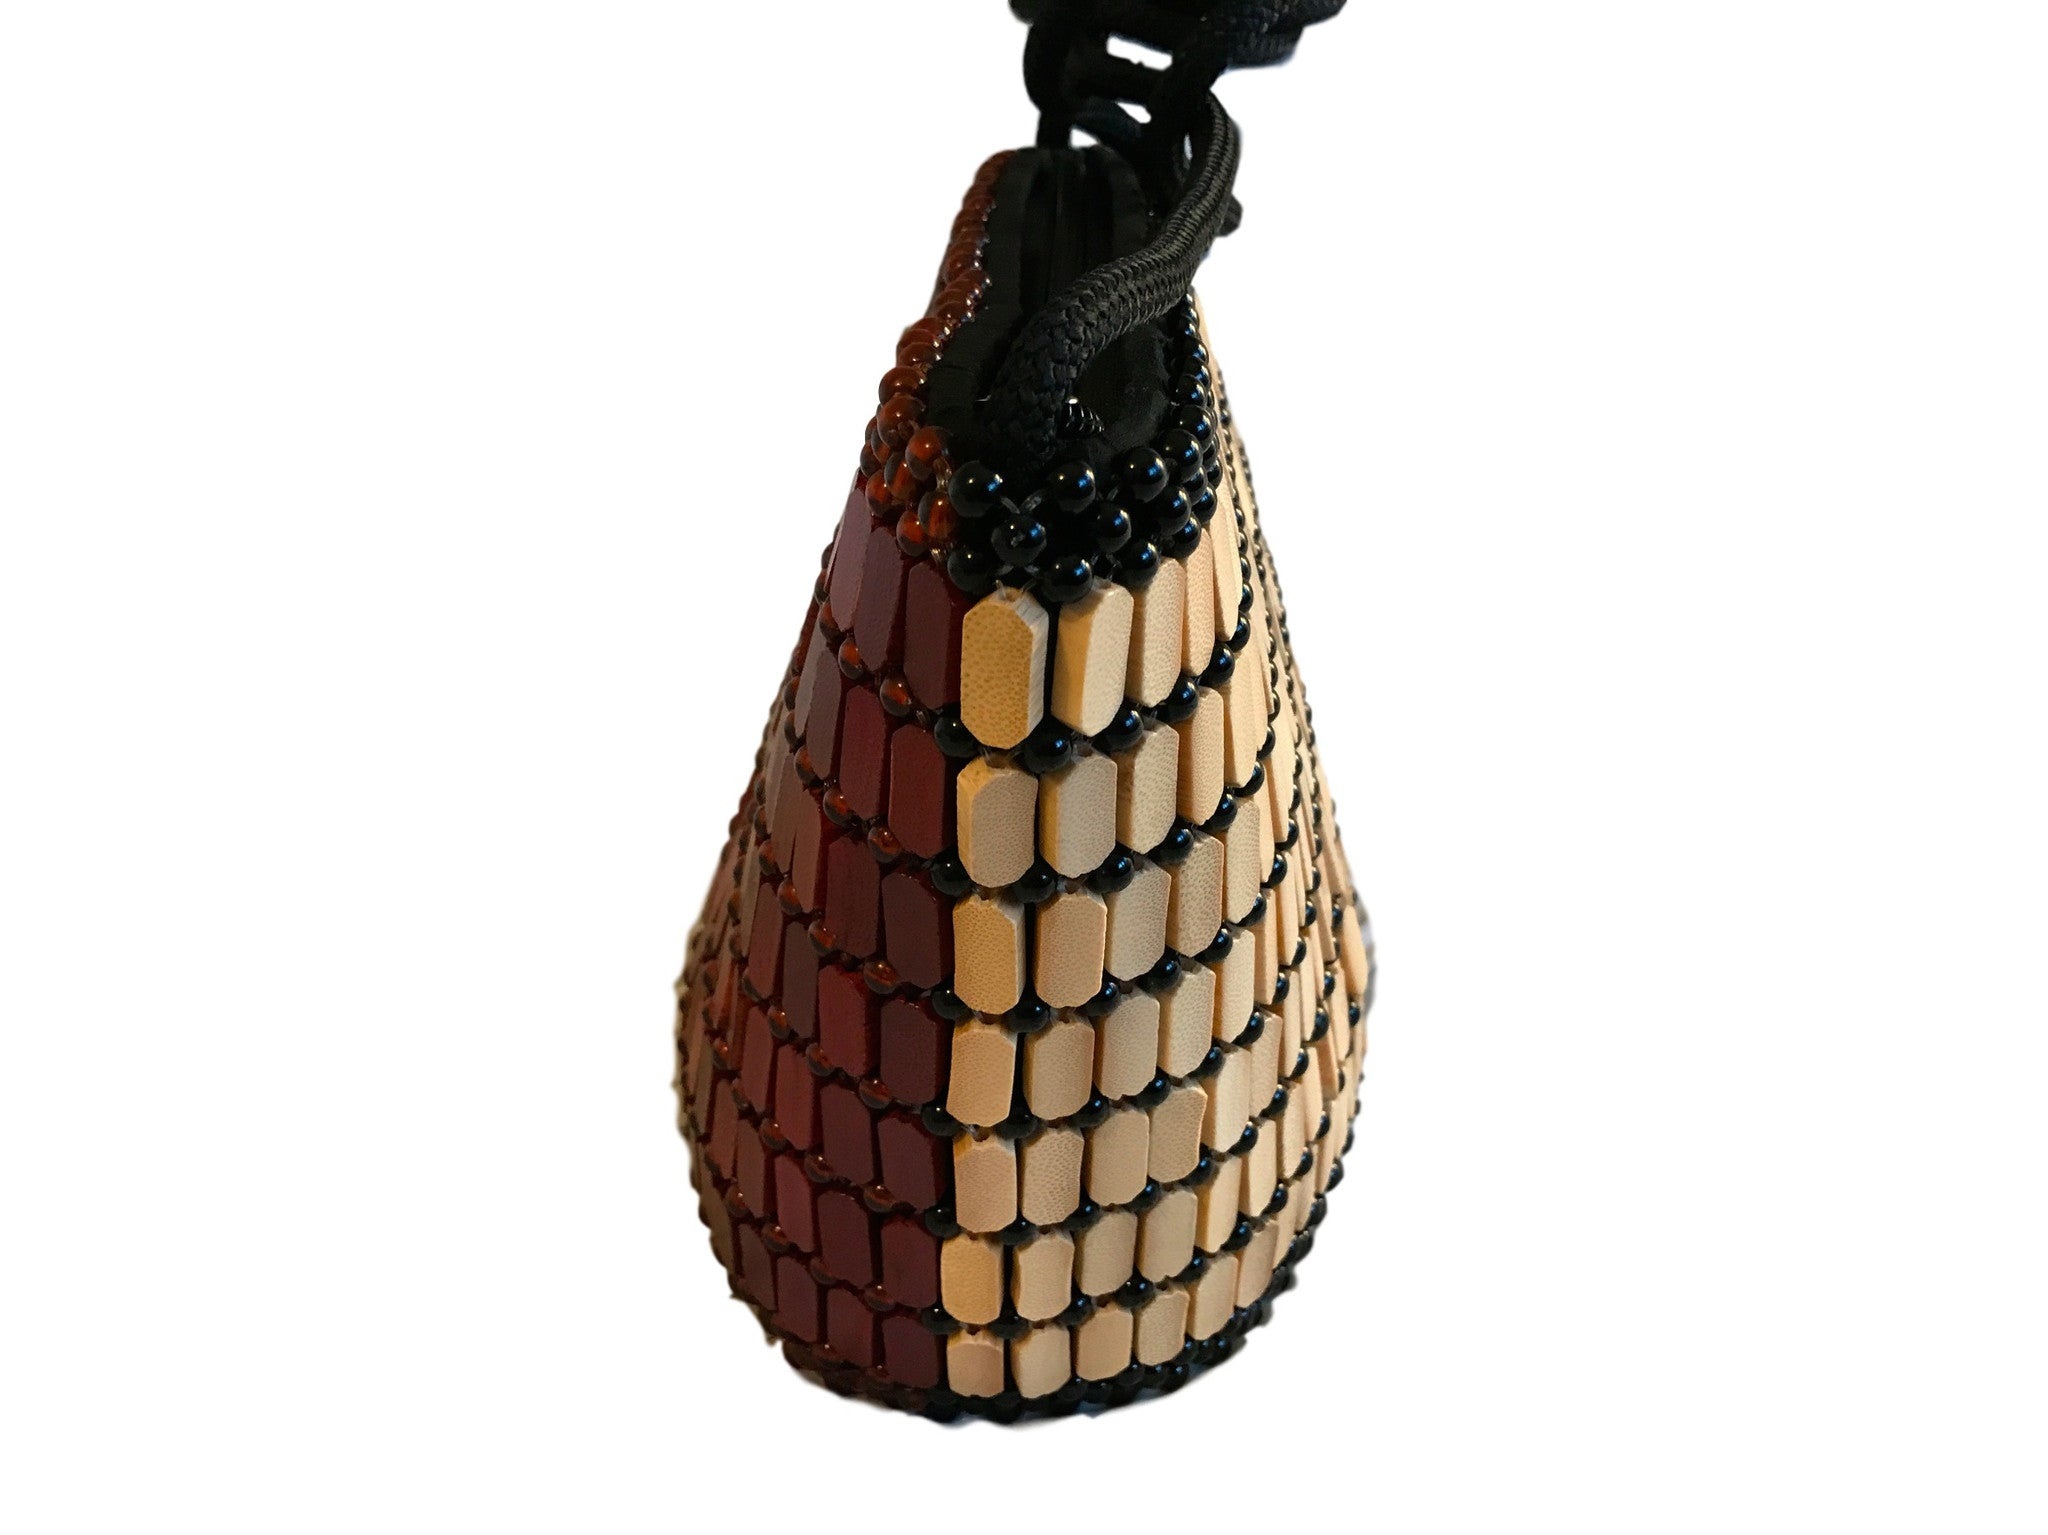 Mendocino_style_brown_and_cream_two-tone_wooden_beaded_cross-body_bag_from_Kenya_at_Kupendiza